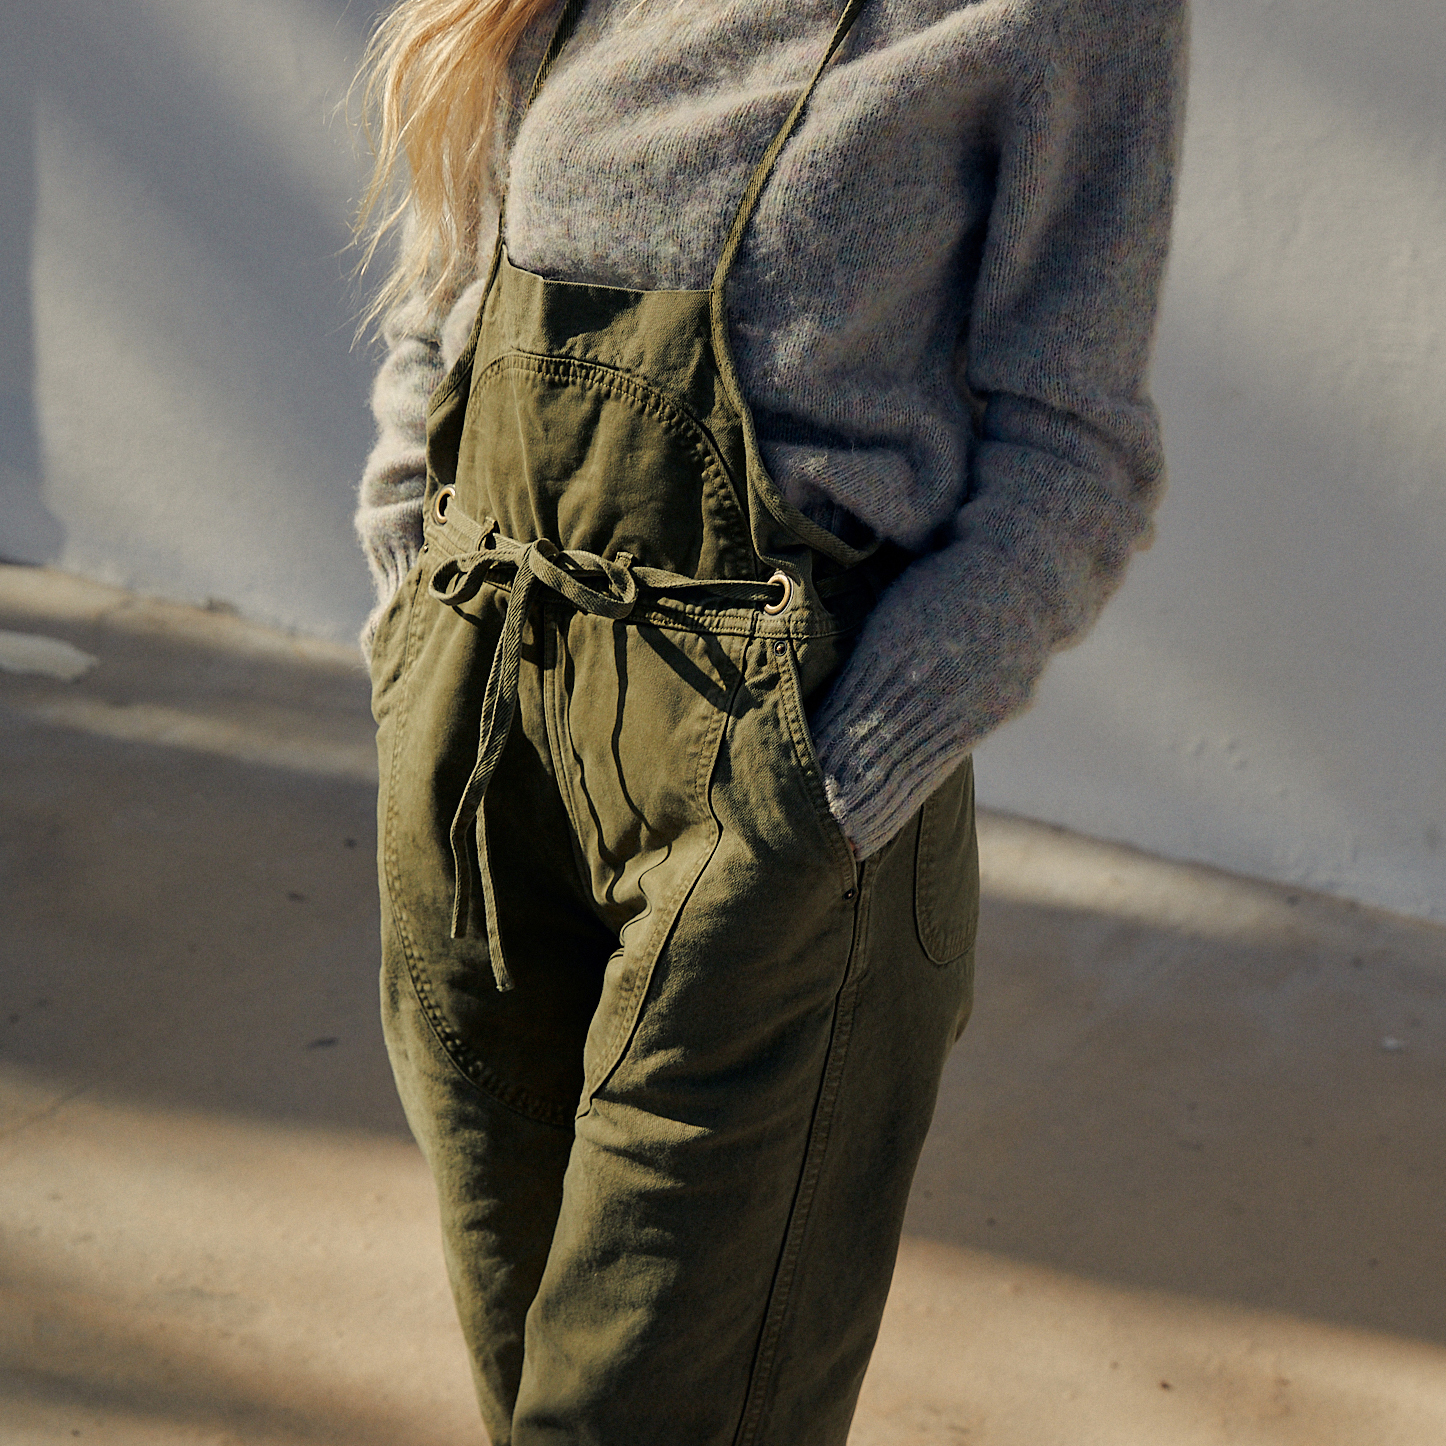 The Light Canvas Welder Overall by Kapital